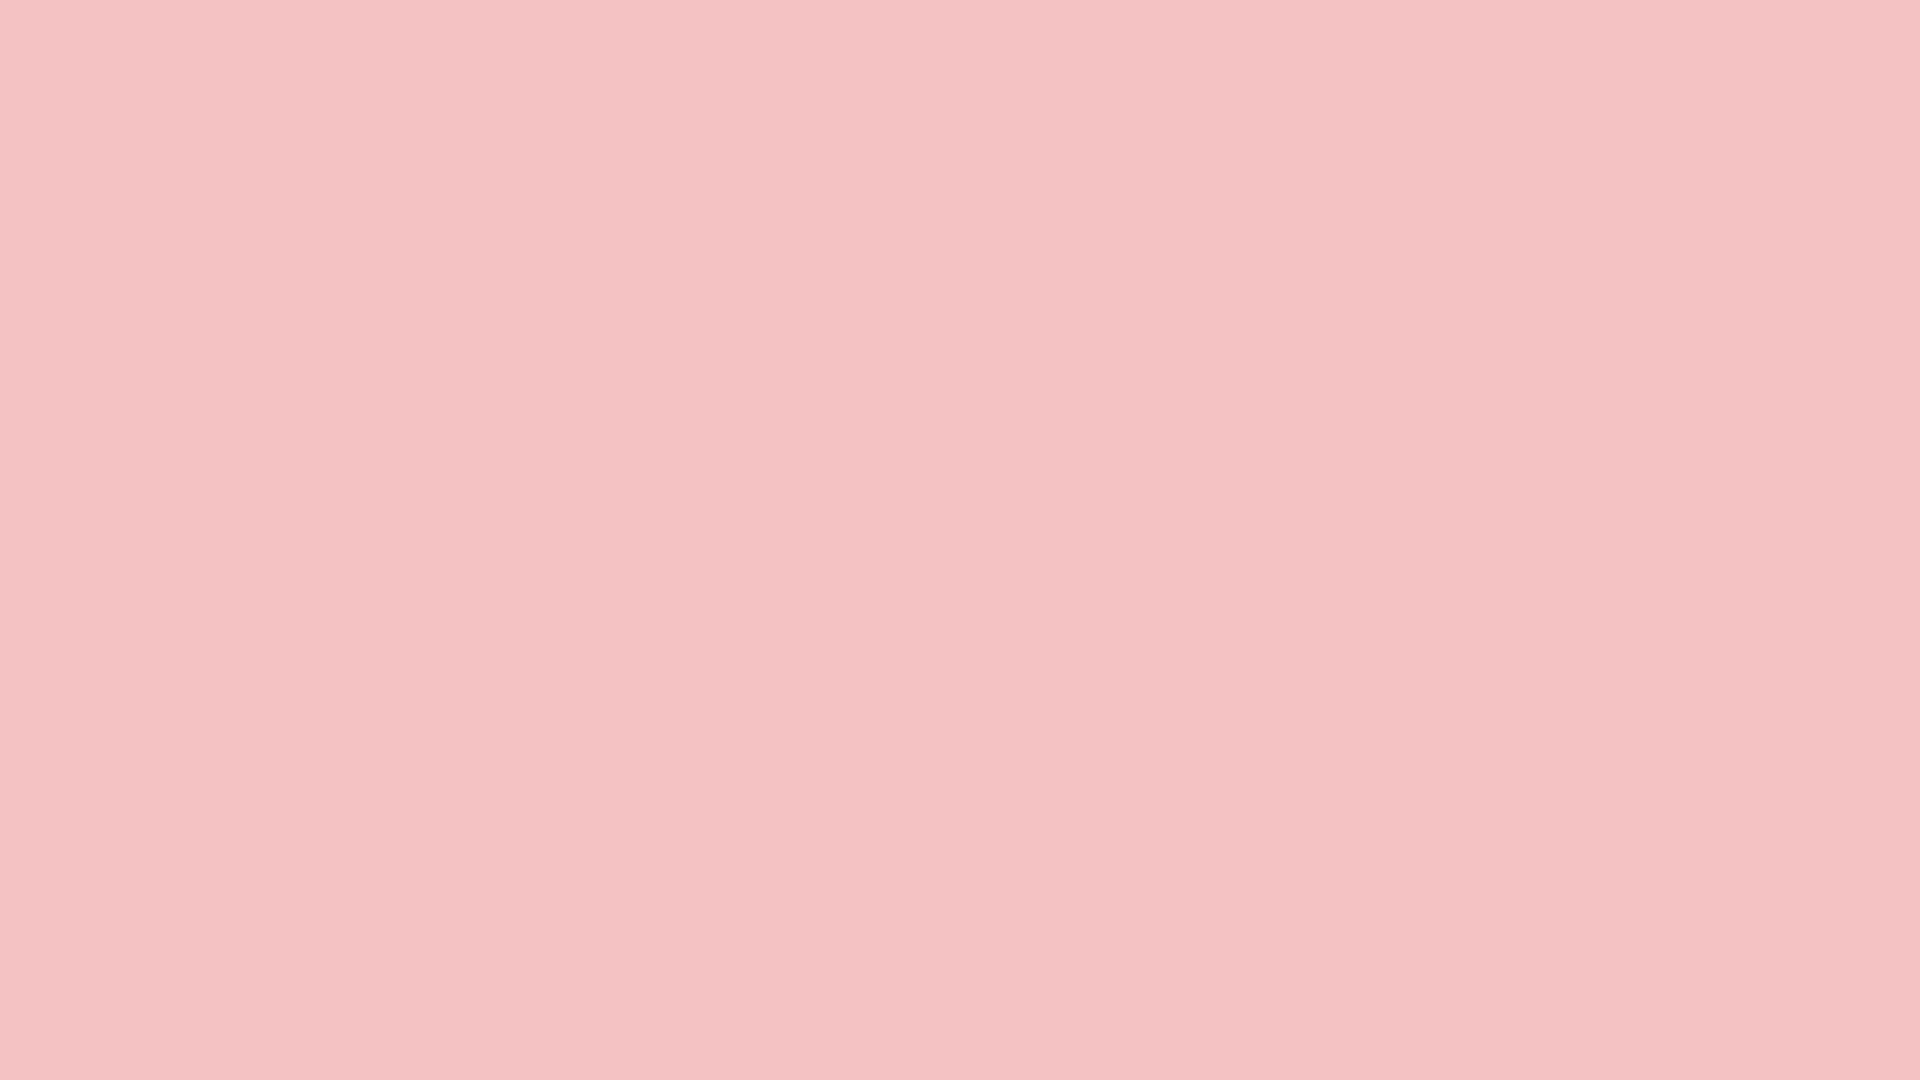 Baby Pink - Wallpaper, High Definition, High Quality ... Pink Baby Background Wallpaper